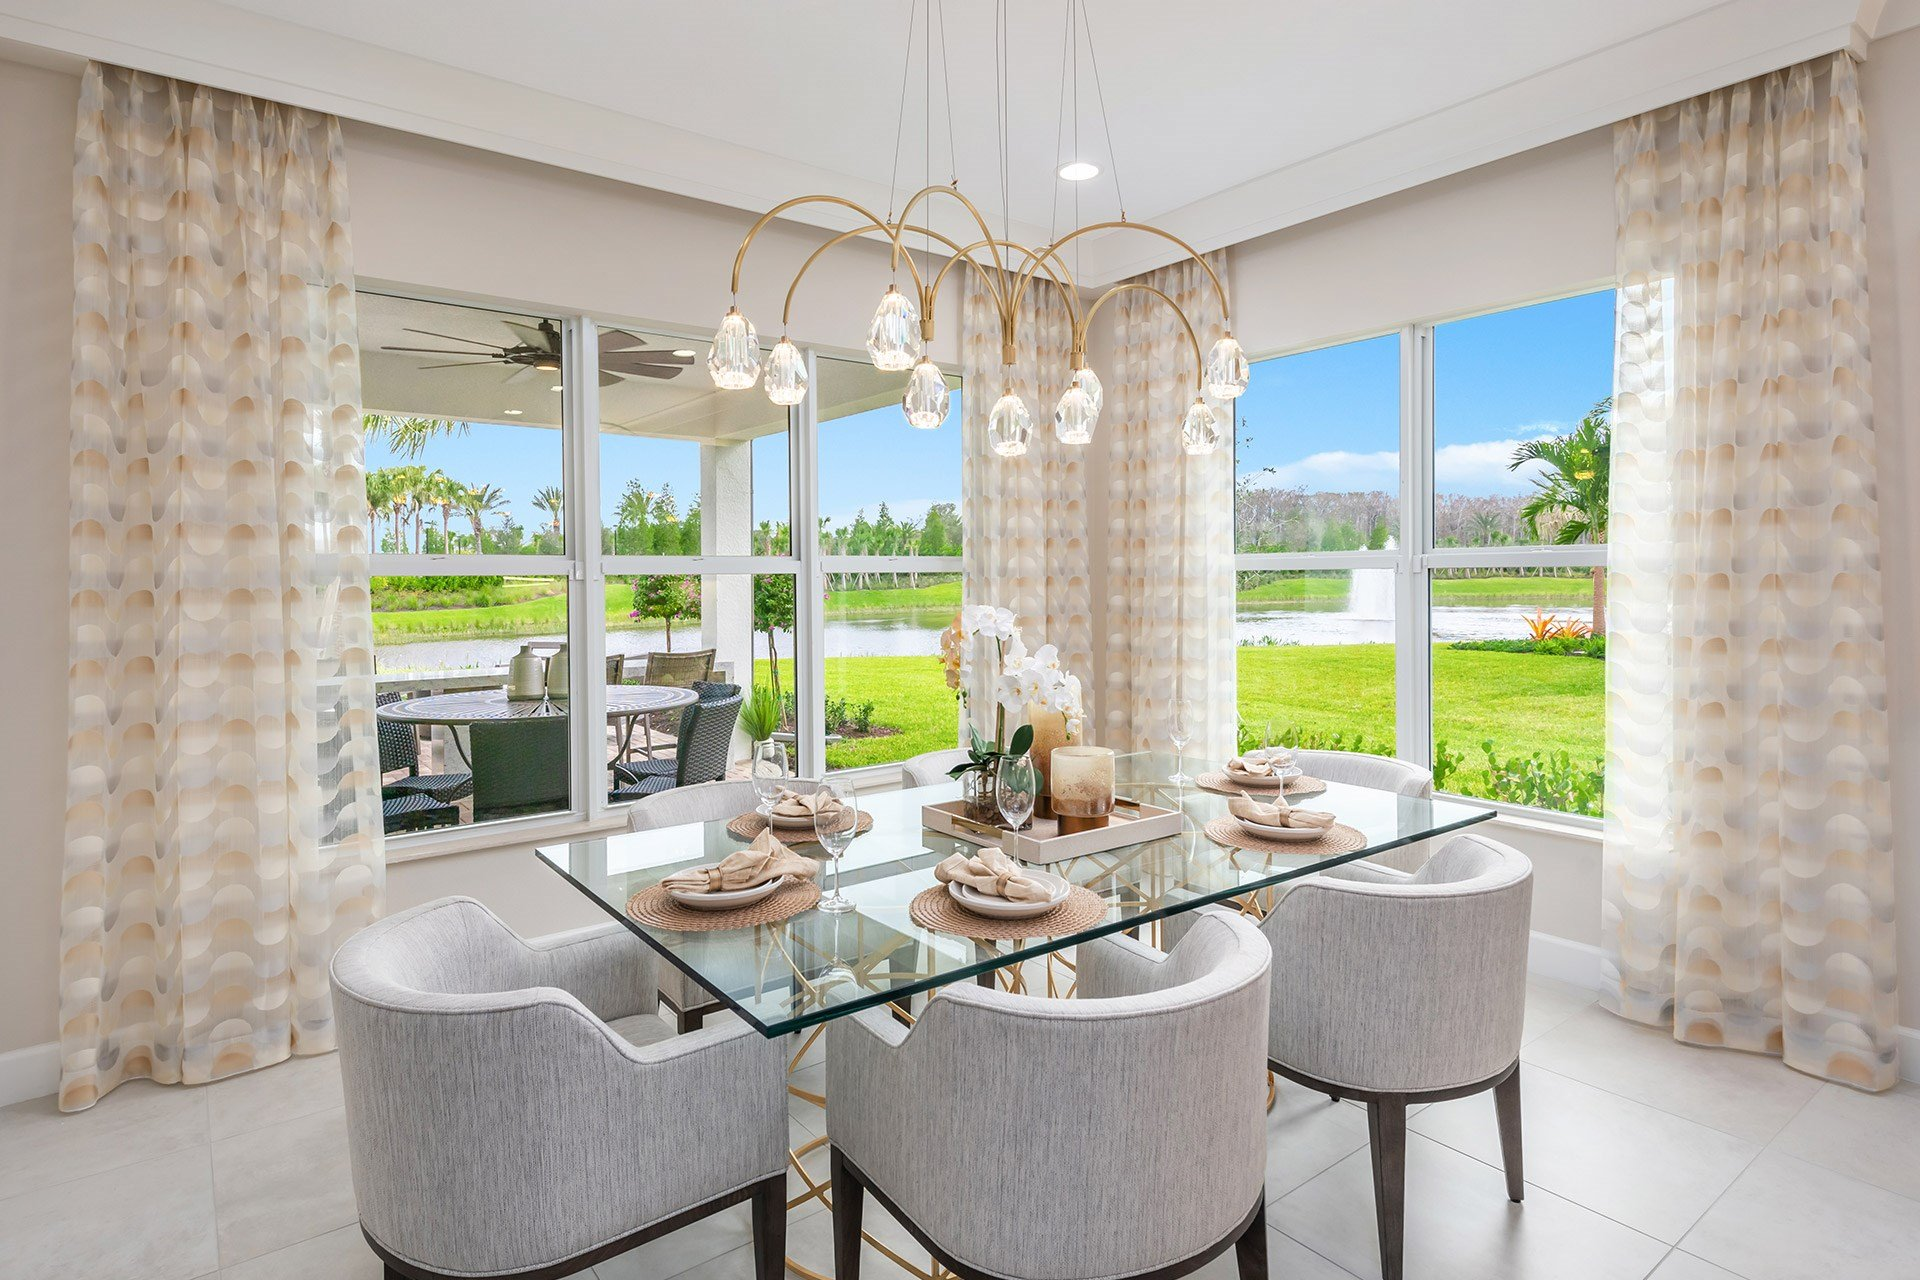 Sunrise Dining Room